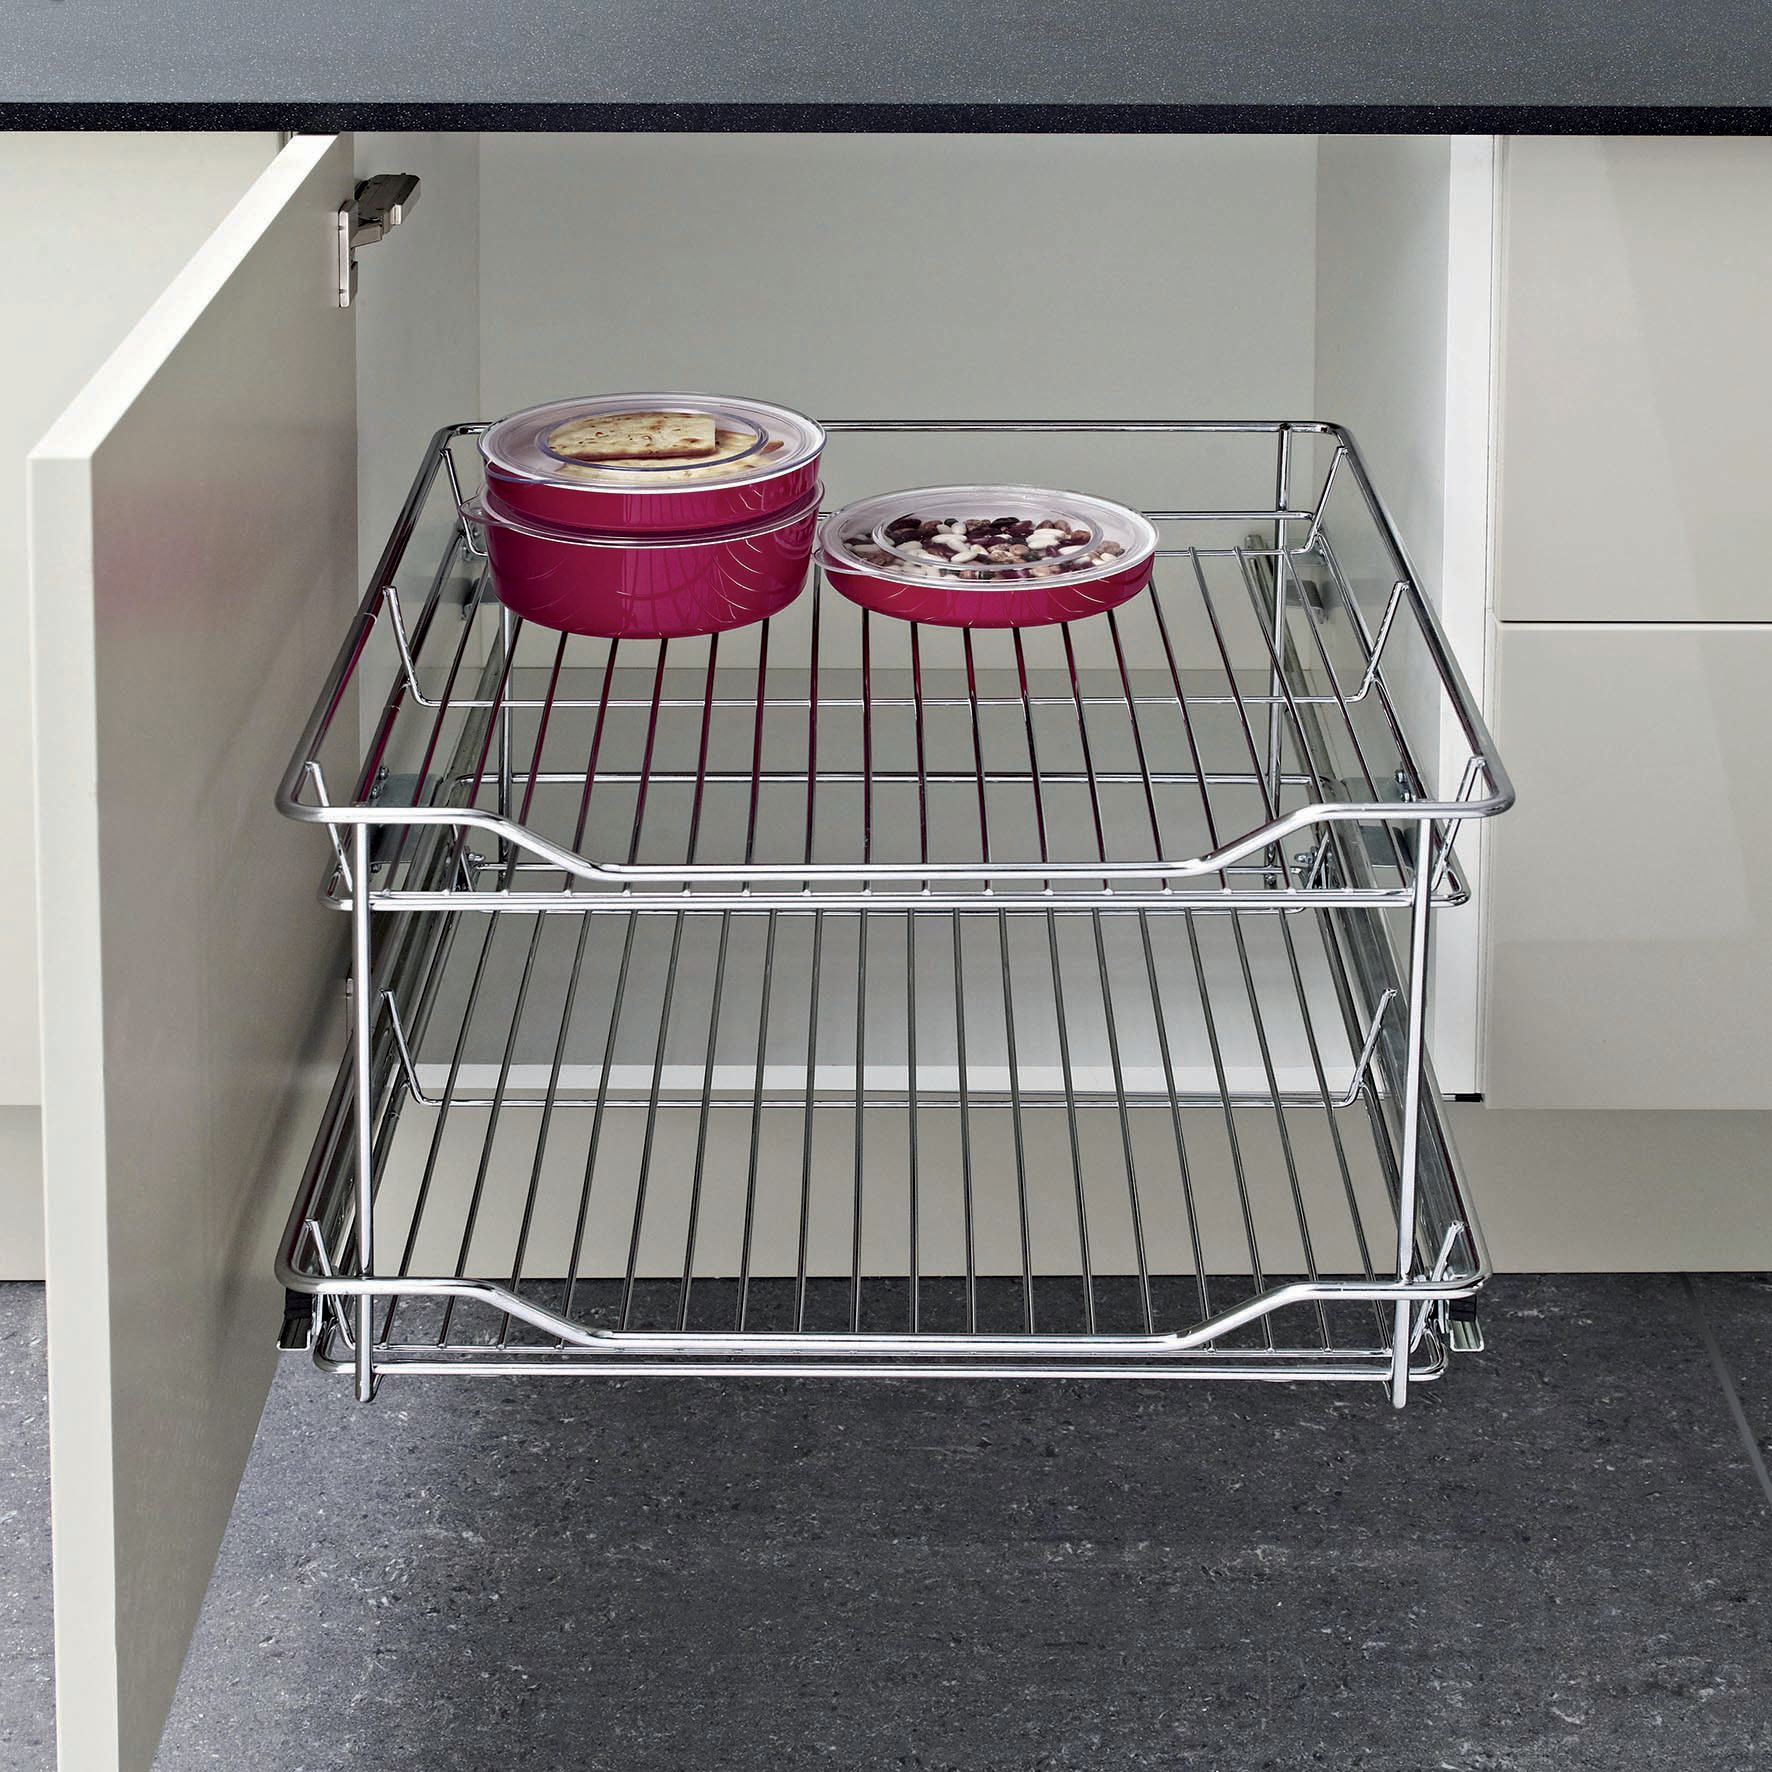 Cheapest price of 300 2 Tier Wire Pullout in new is £39.00